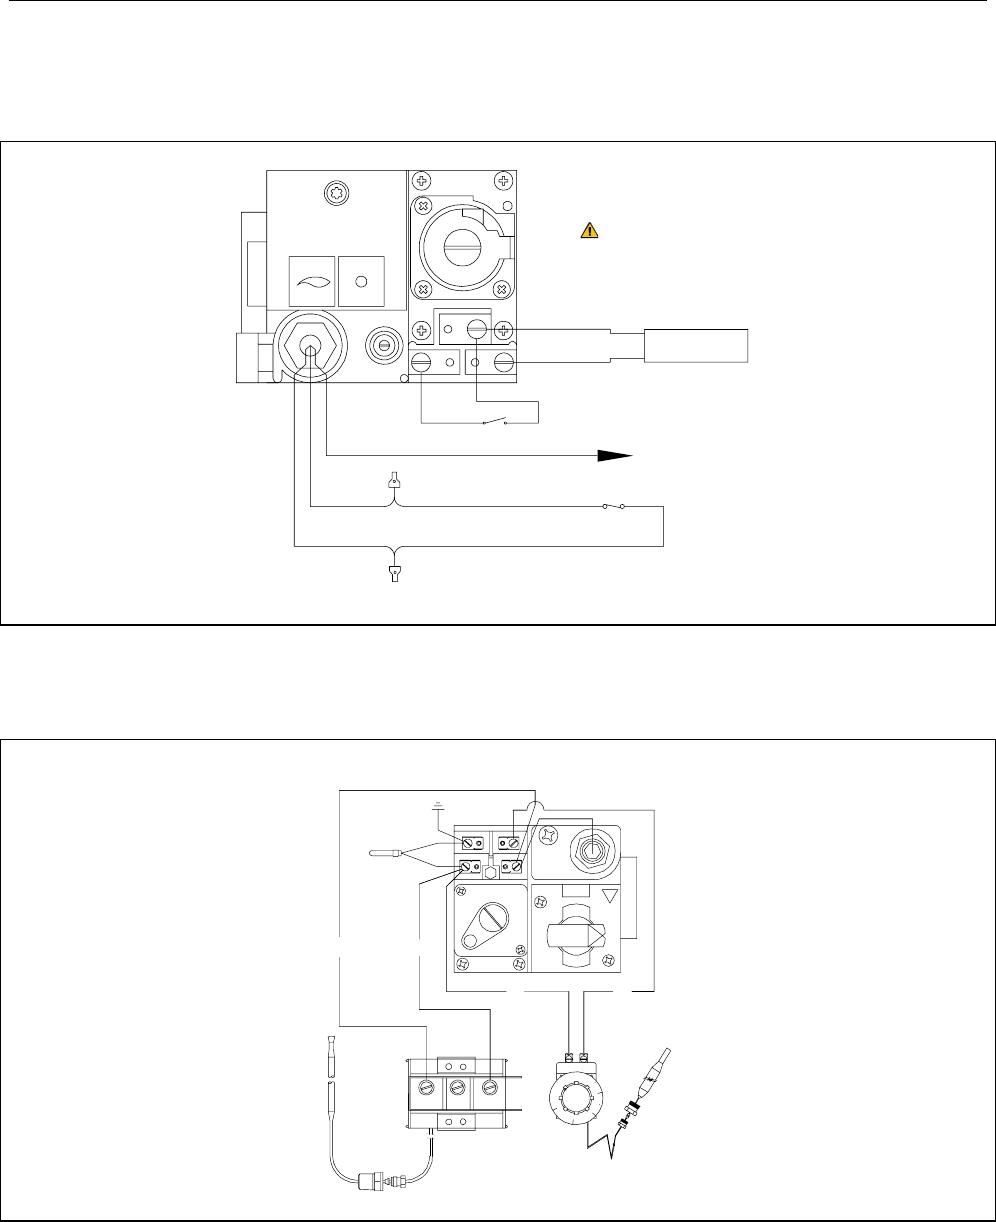 8 wire thermostat wiring diagram with Sr52 on P 0996b43f80759c3c further Single Pole Vs Double Pole Wiring Diagrams besides Dgaa070bdtb Coleman Gas Furnace Parts further Install The Honeywell Lyric Thermostat Like A Pro together with Topic.